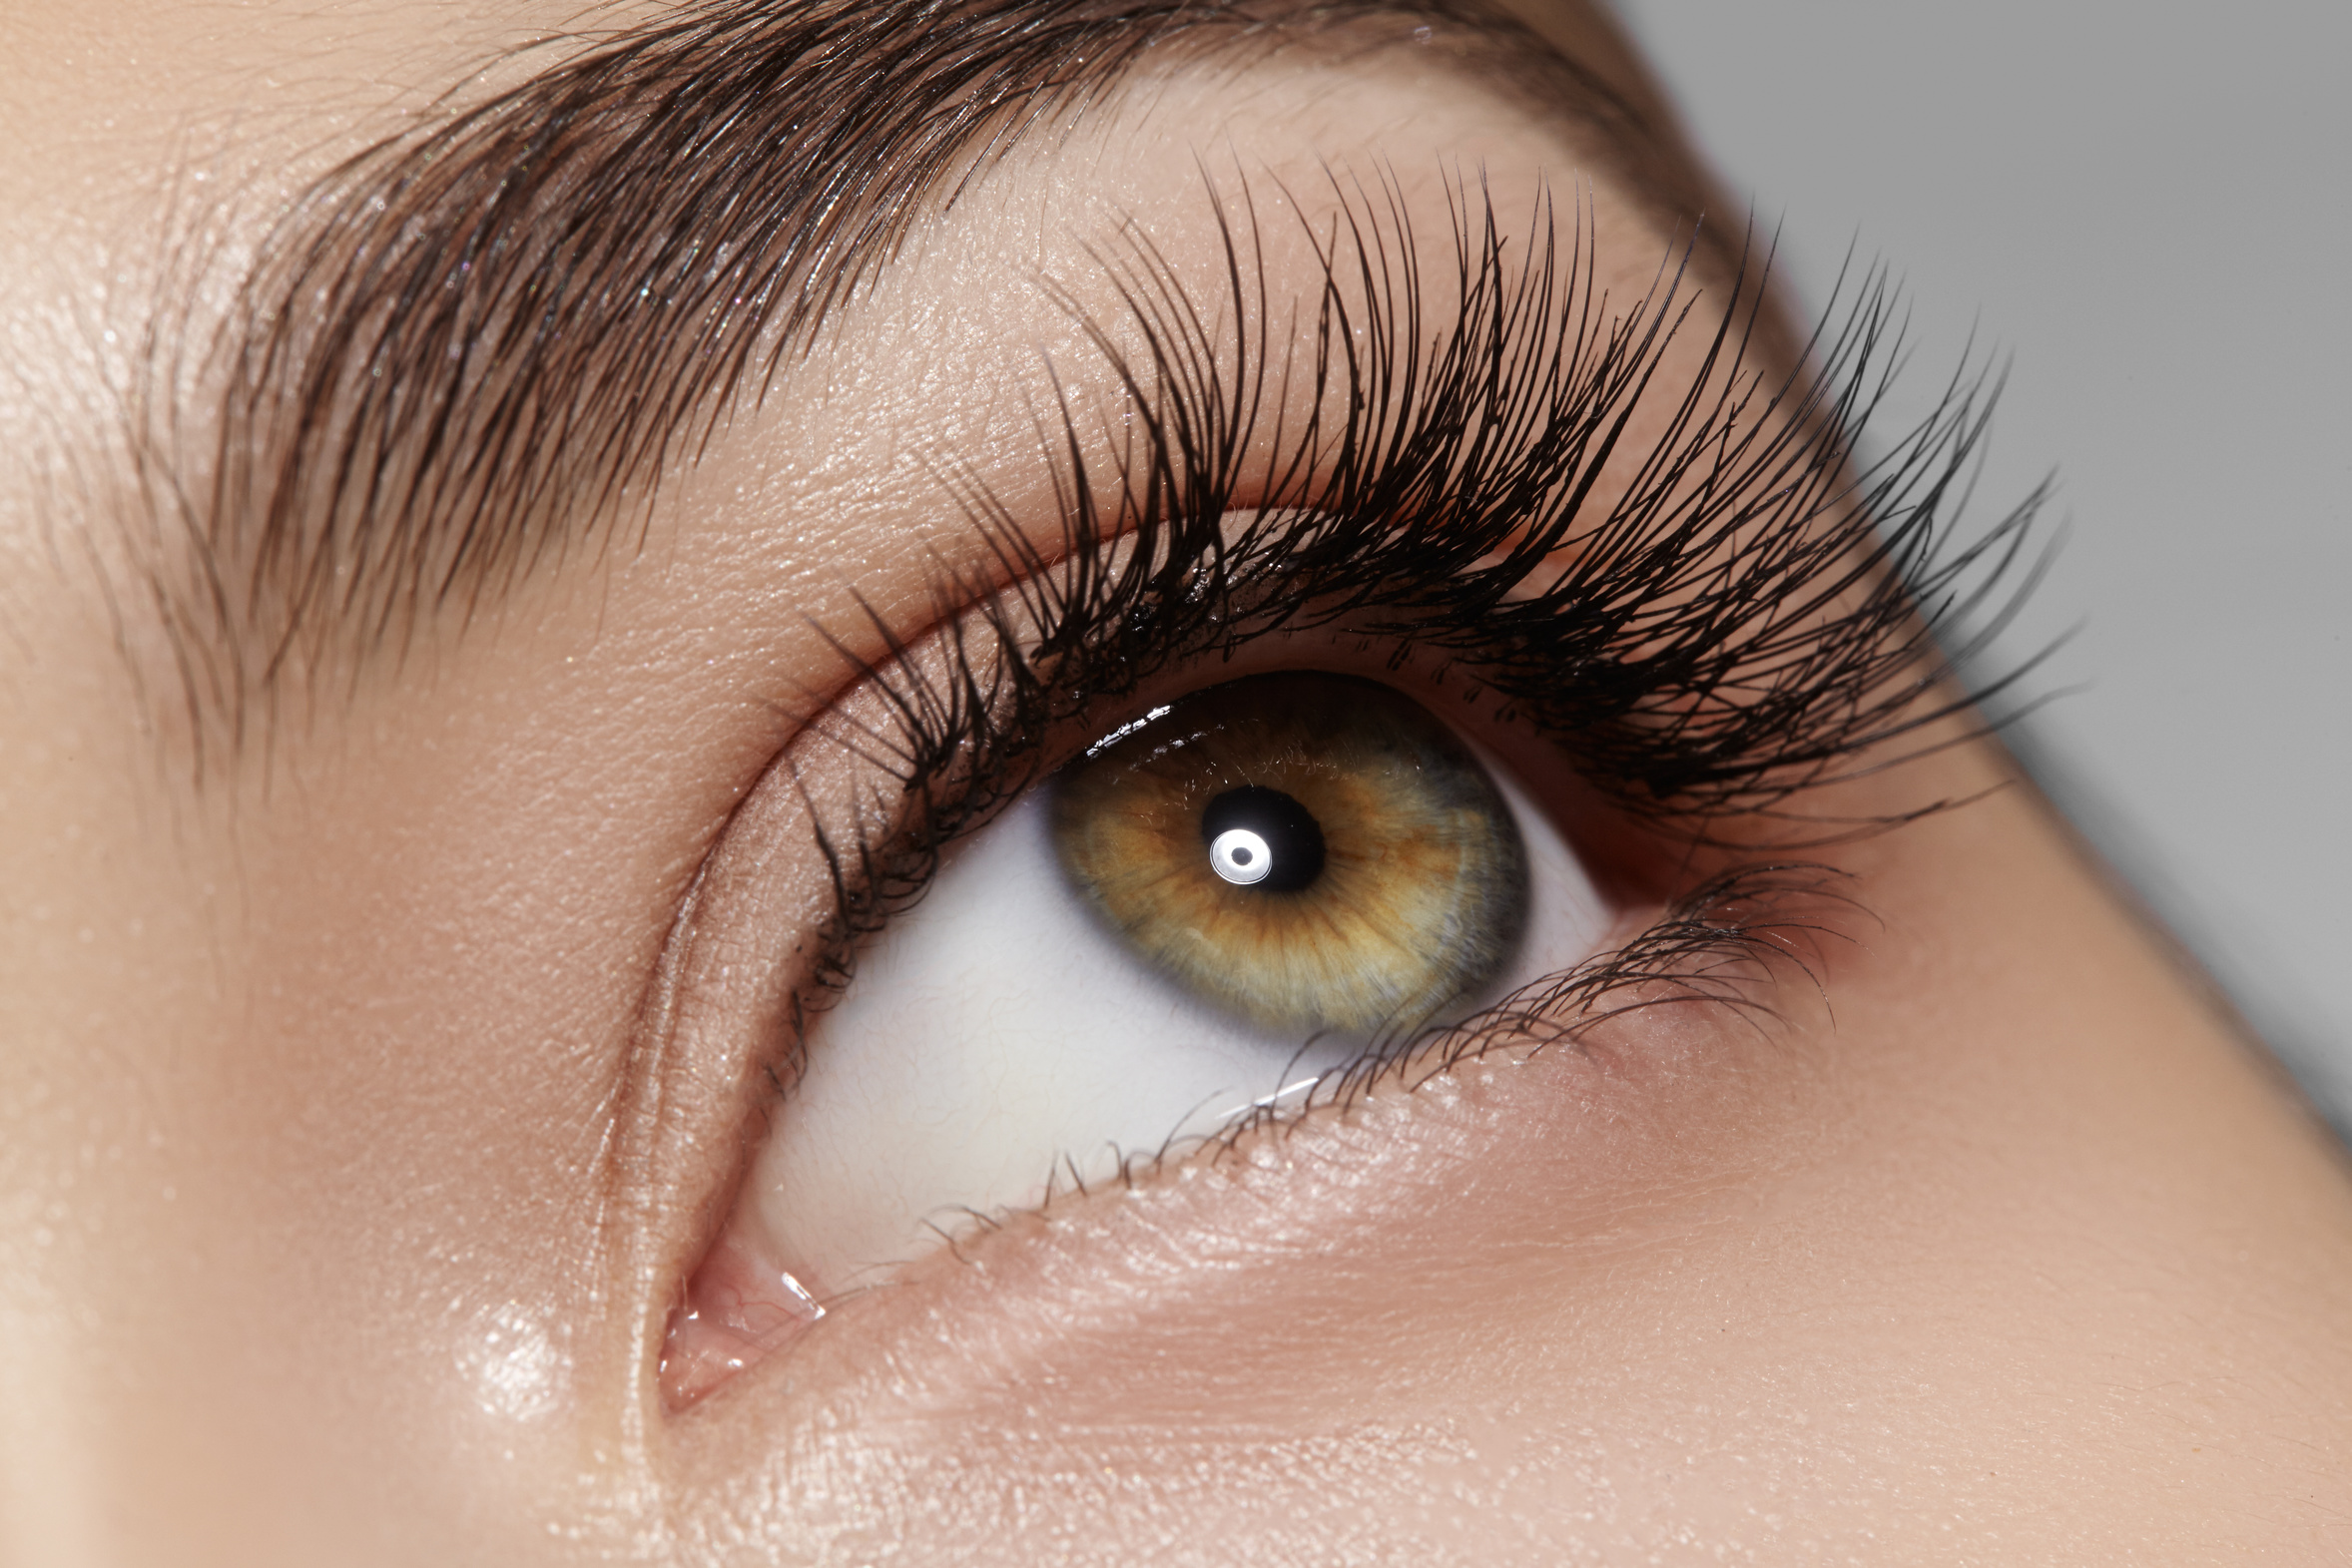 Tanning Salon in Croydon | Lashes in Croydon